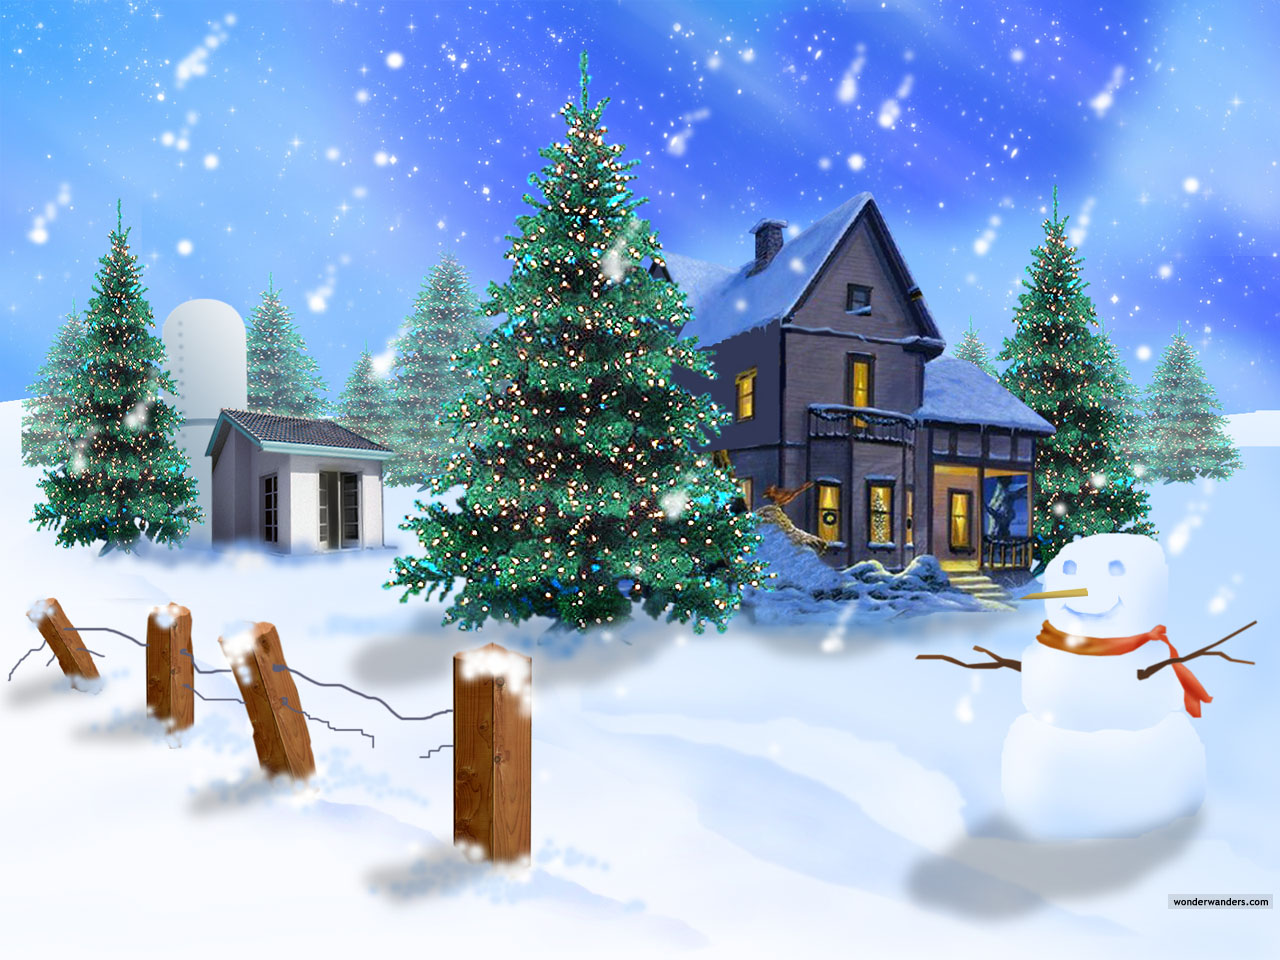 3D Christmas Wallpaper HD| HD Wallpapers ,Backgrounds ,Photos ,Pictures, Image ,PC